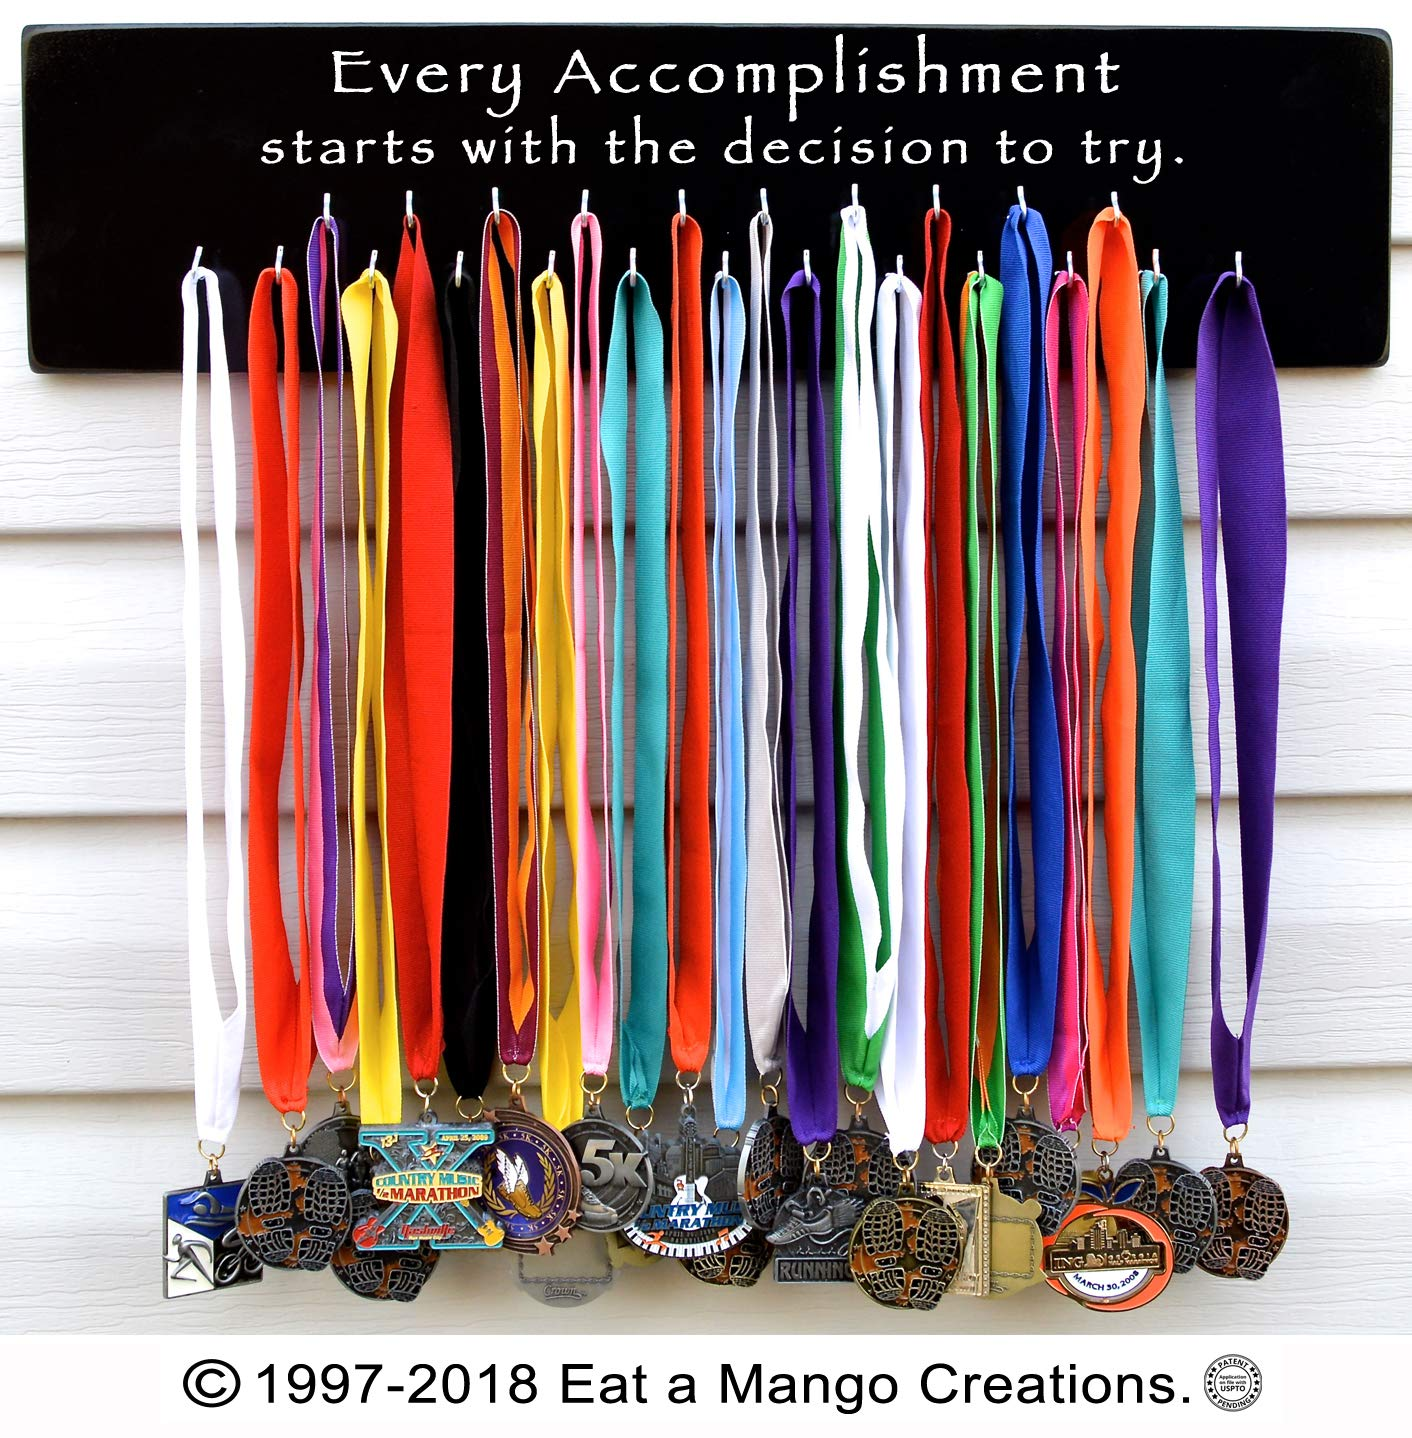 Eat a Mango Creations Order Early for Christmas,Medal Holder S4219 Every Accomplishment